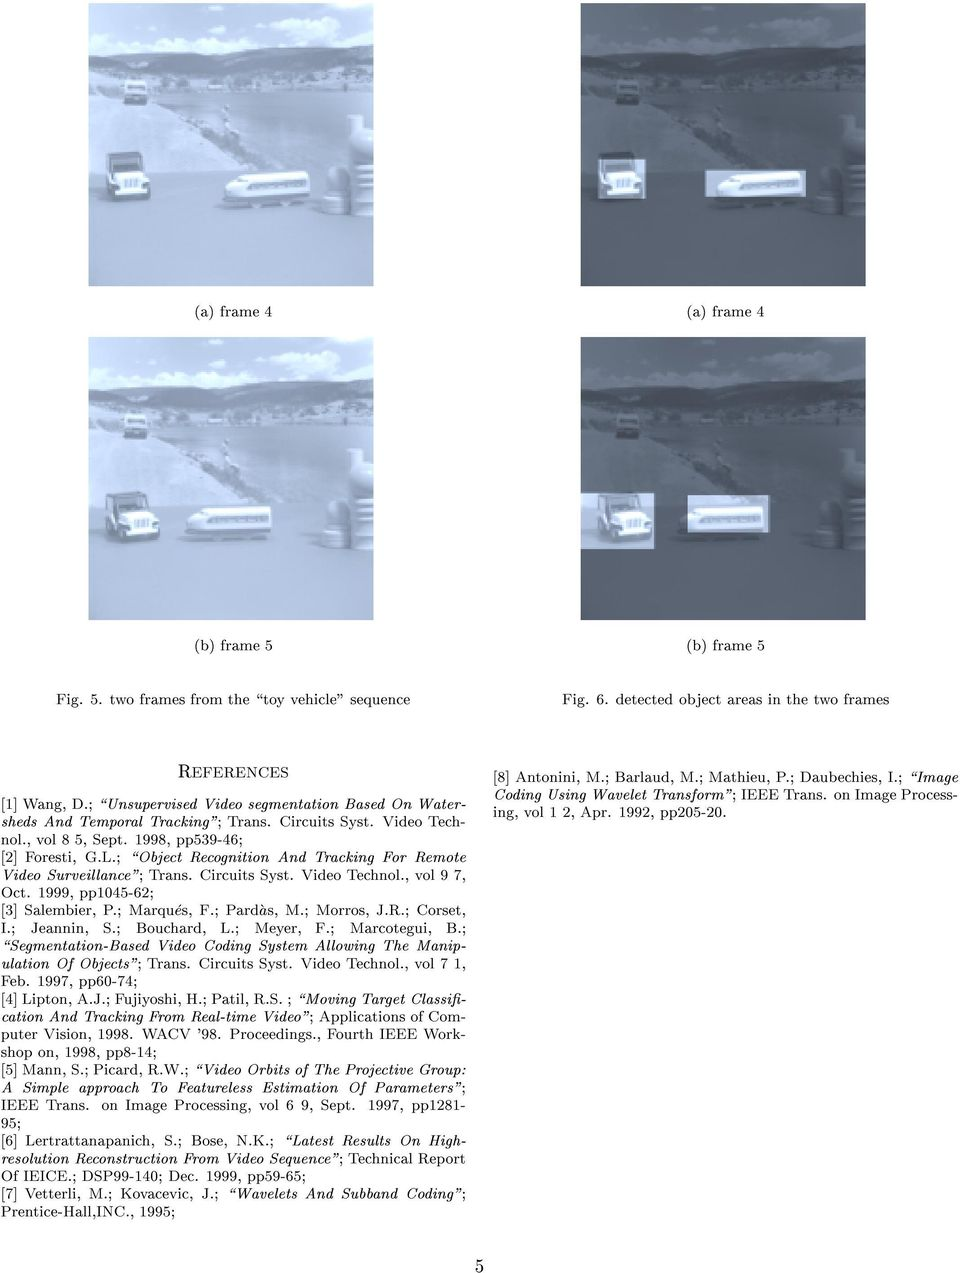 "\Object Recognition And Tracking For Remote Video Surveillance"" Trans. Circuits Syst. Video Technol., vol 9 7, Oct. 1999, pp1045-62 [3] Salembier, P. Marques, F. Pardas, M. Morros, J.R. Corset, I."